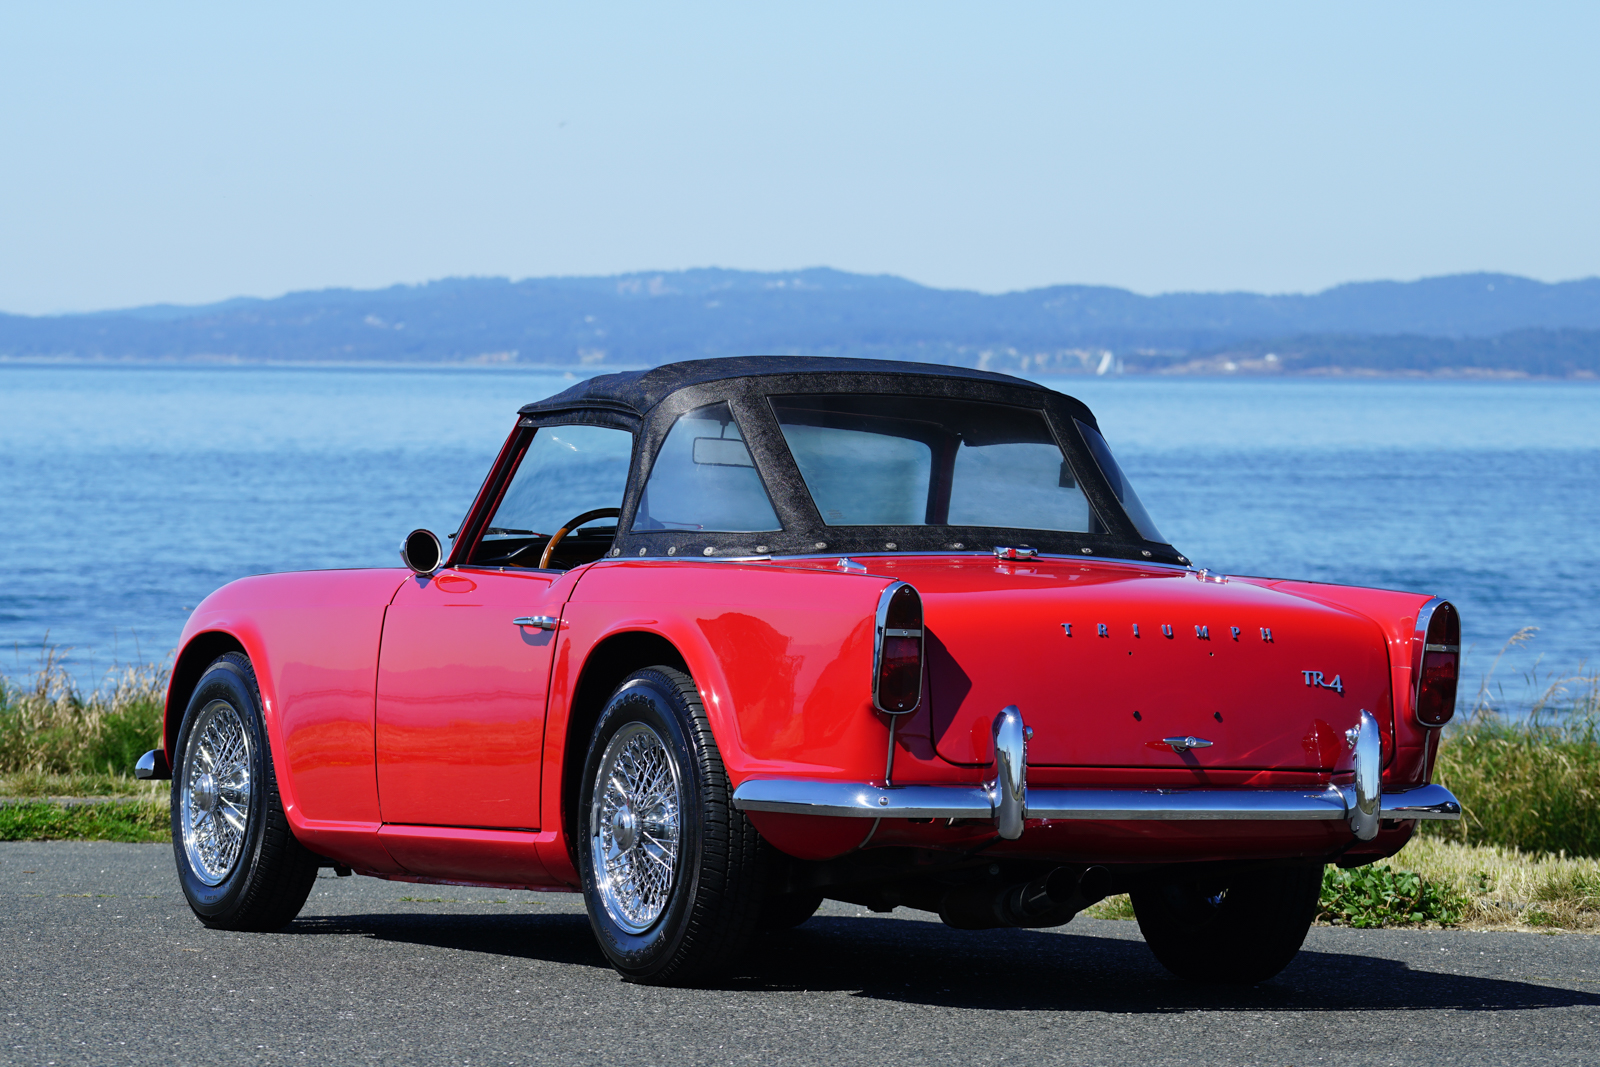 1963 Triumph TR4 For Sale | Silver Arrow Cars Ltd